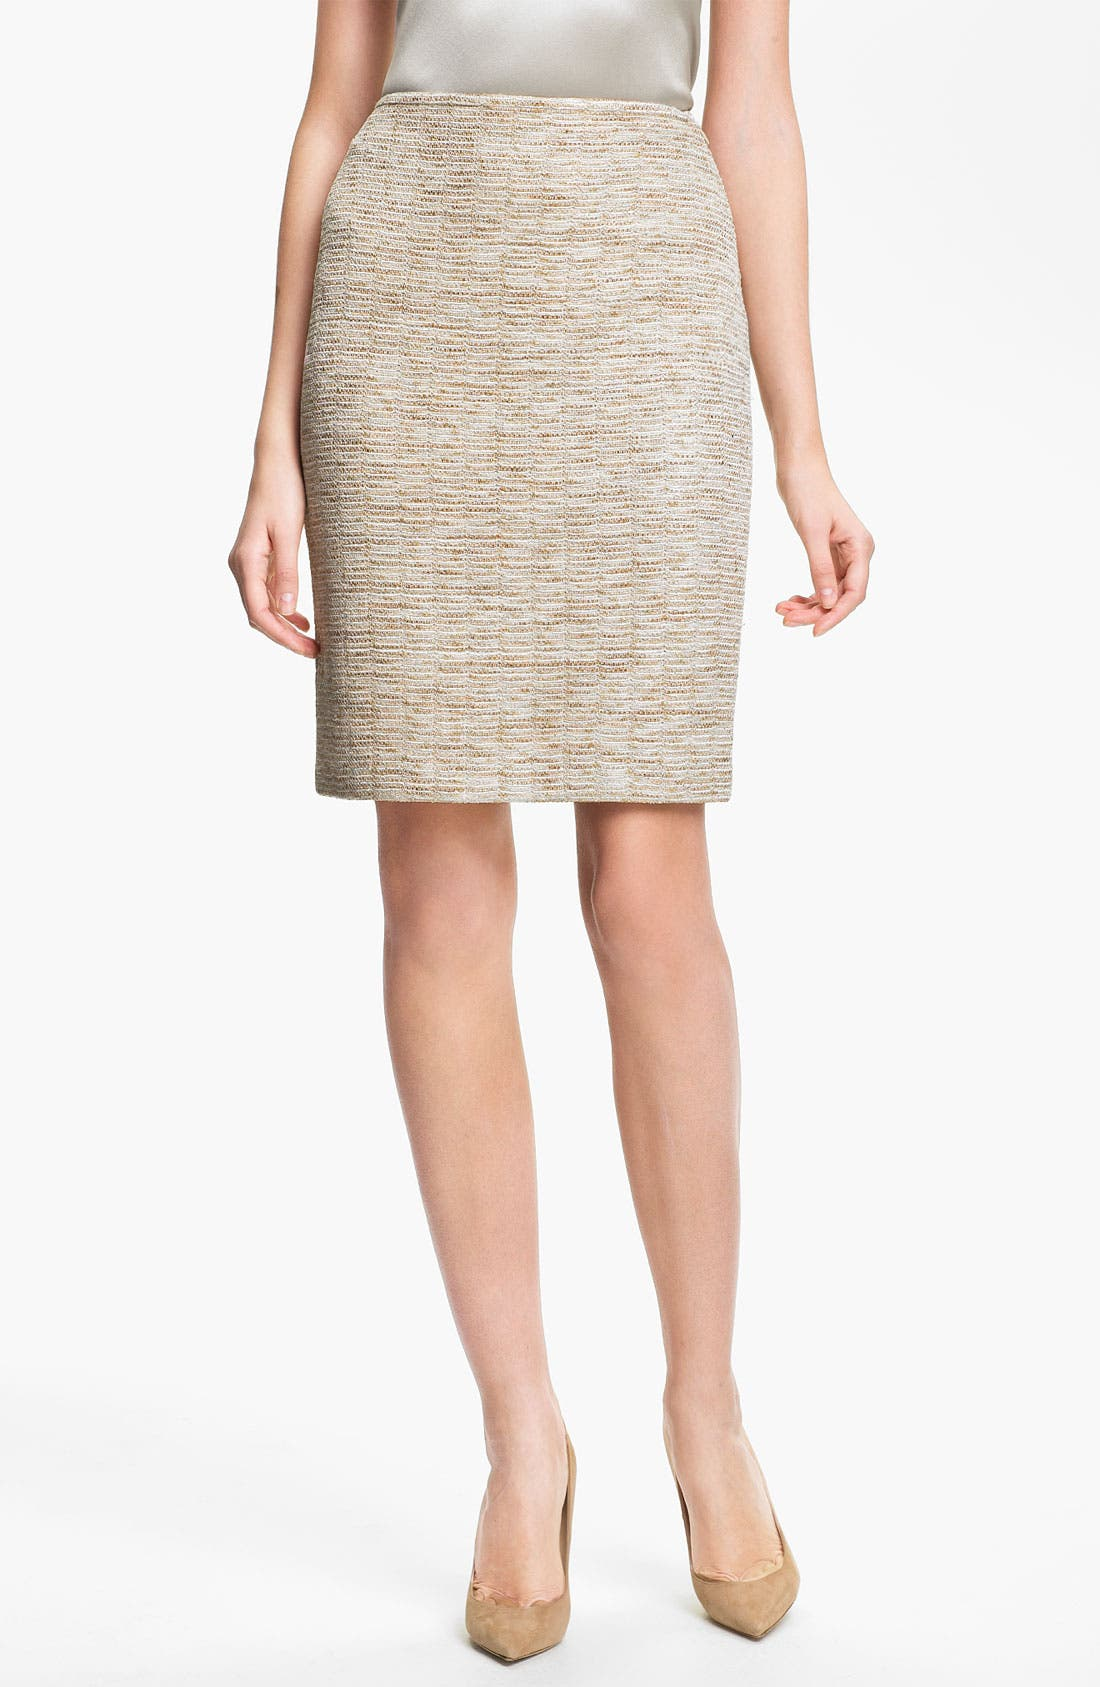 Alternate Image 1 Selected - St. John Collection Shimmer Knit Pencil Skirt